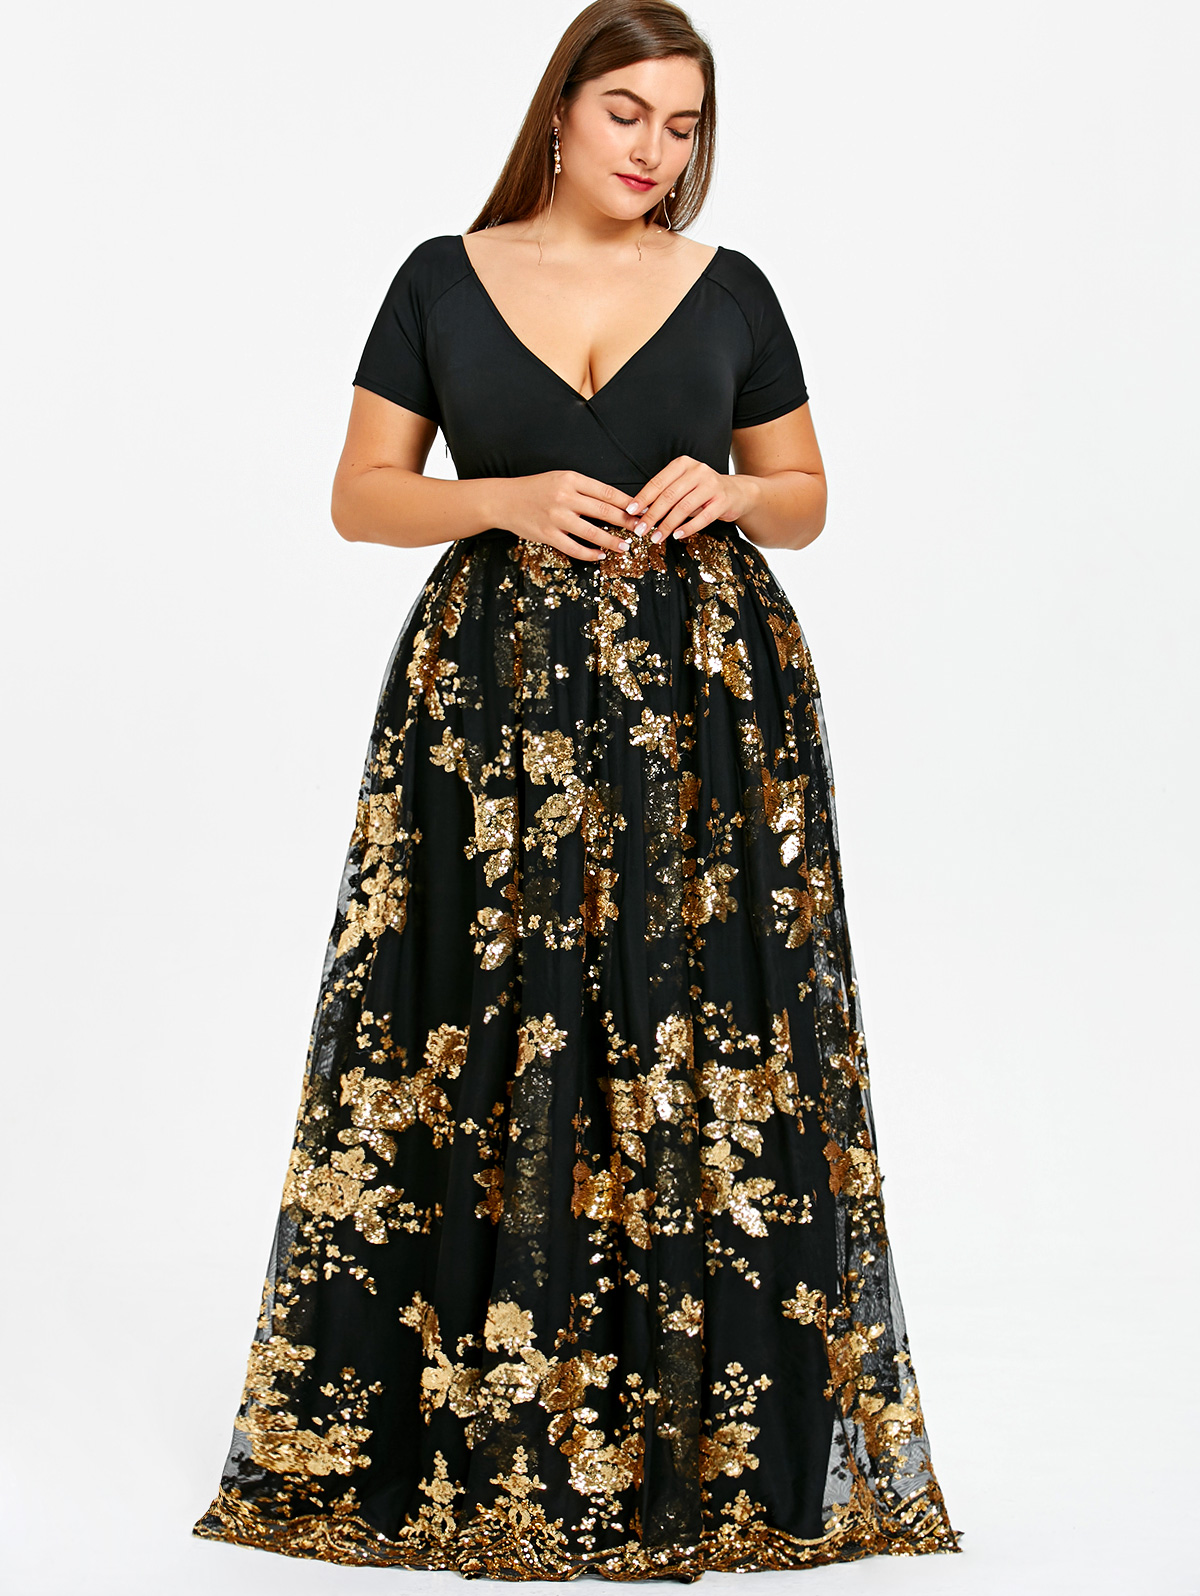 c2dca16221ad2 Gamiss Women Plus Size 5XL Floral Sparkly Maxi Prom Sequined Dress ...